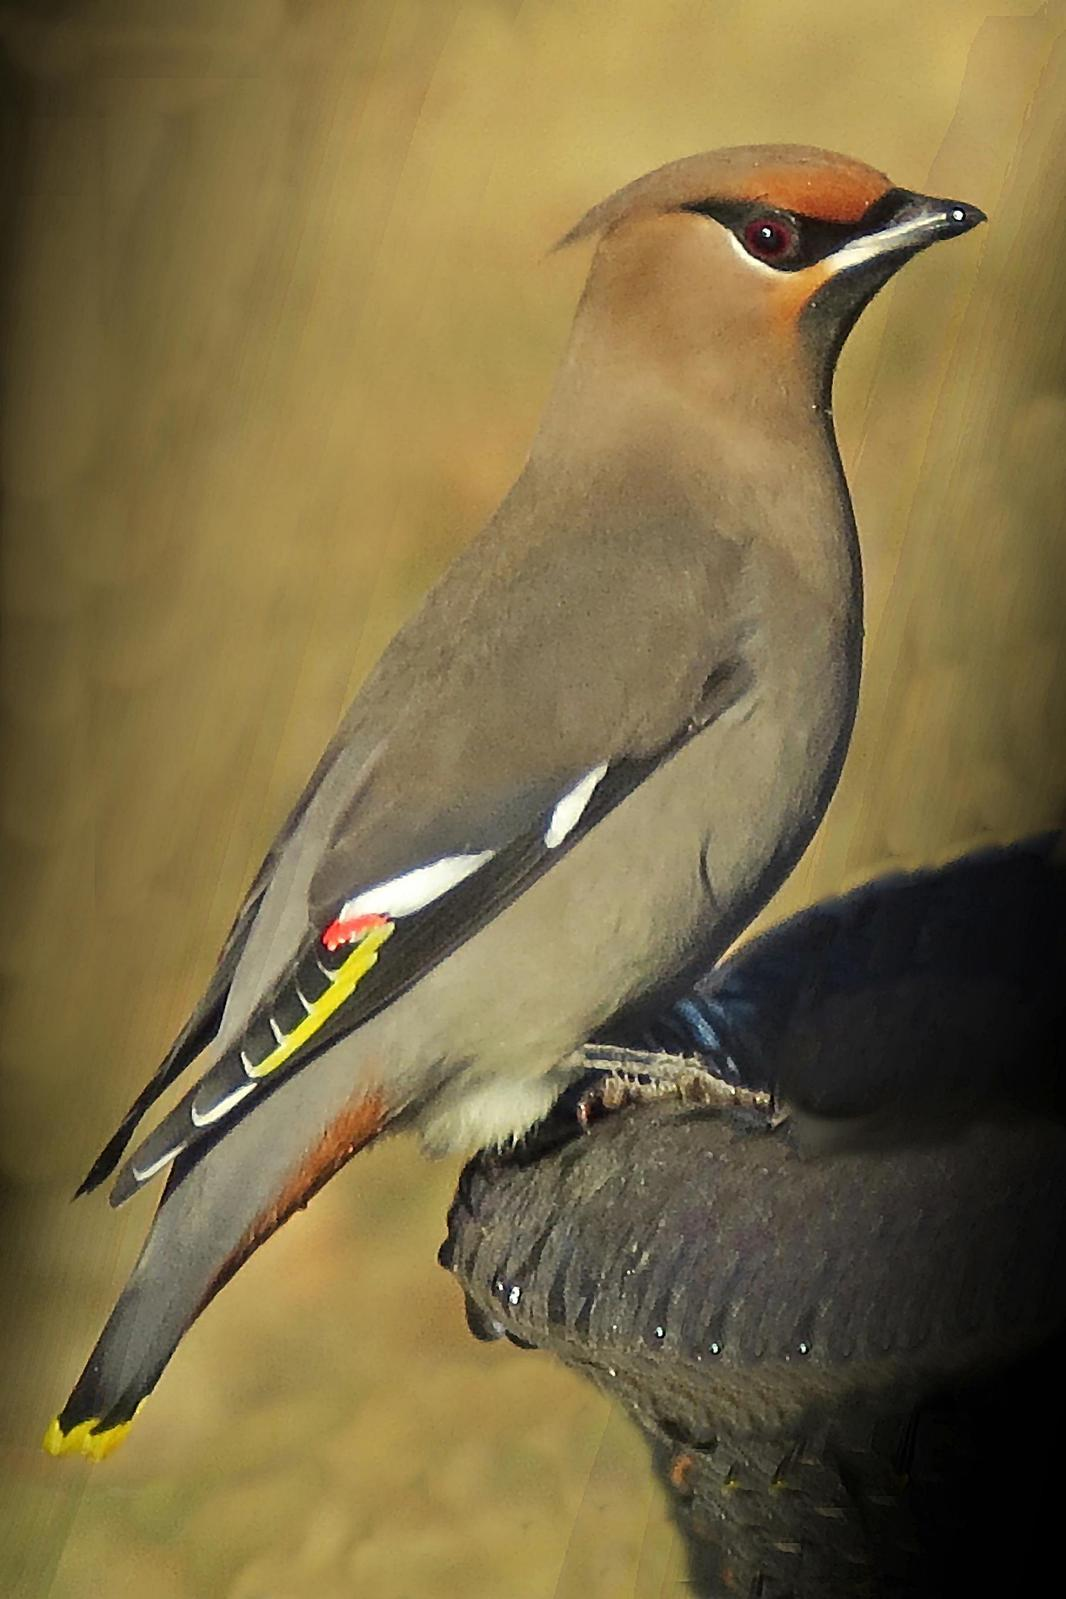 Bohemian Waxwing Photo by Bob Neugebauer